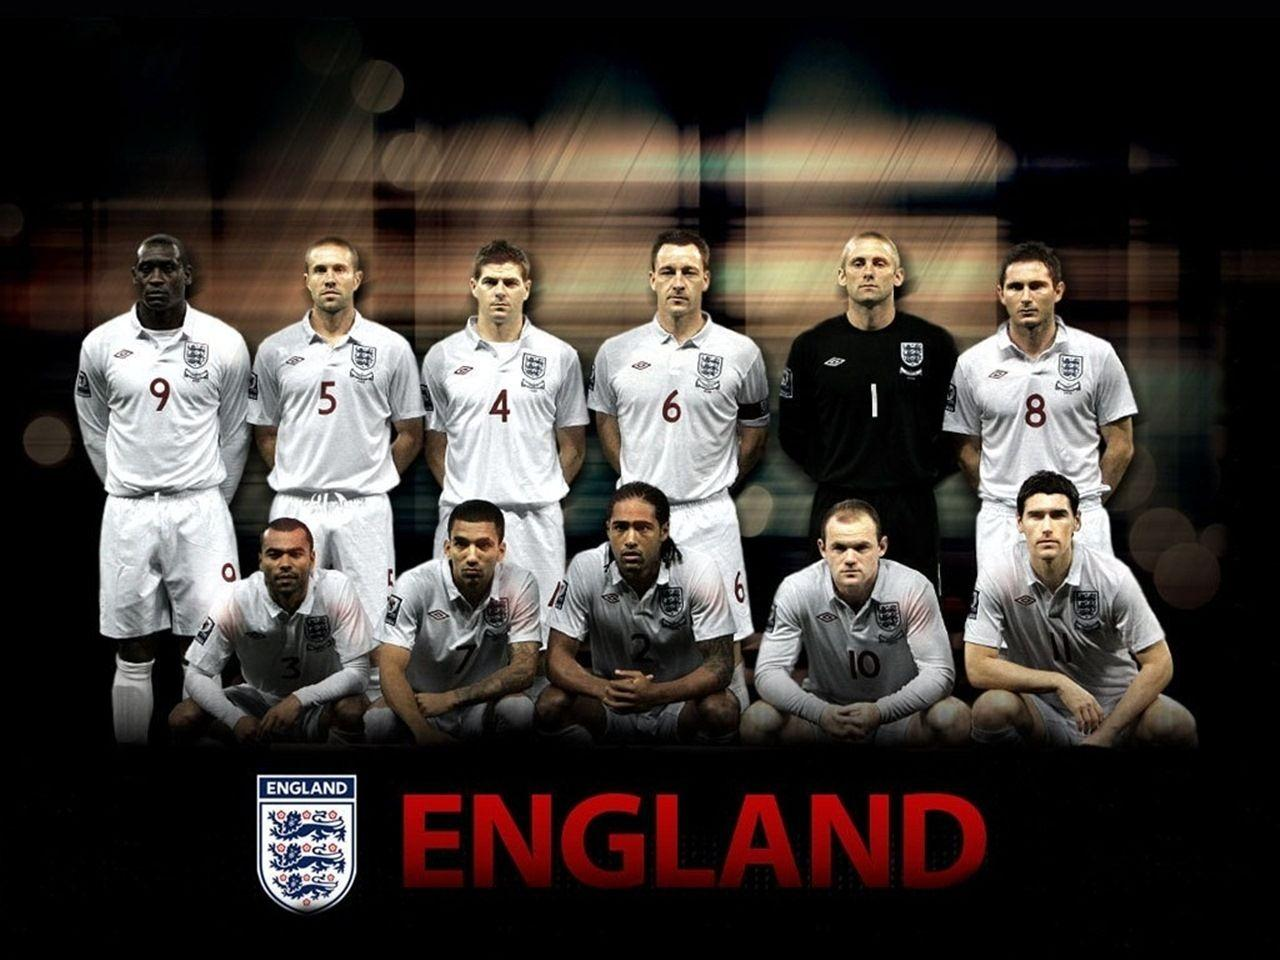 England National Football Team Background 8